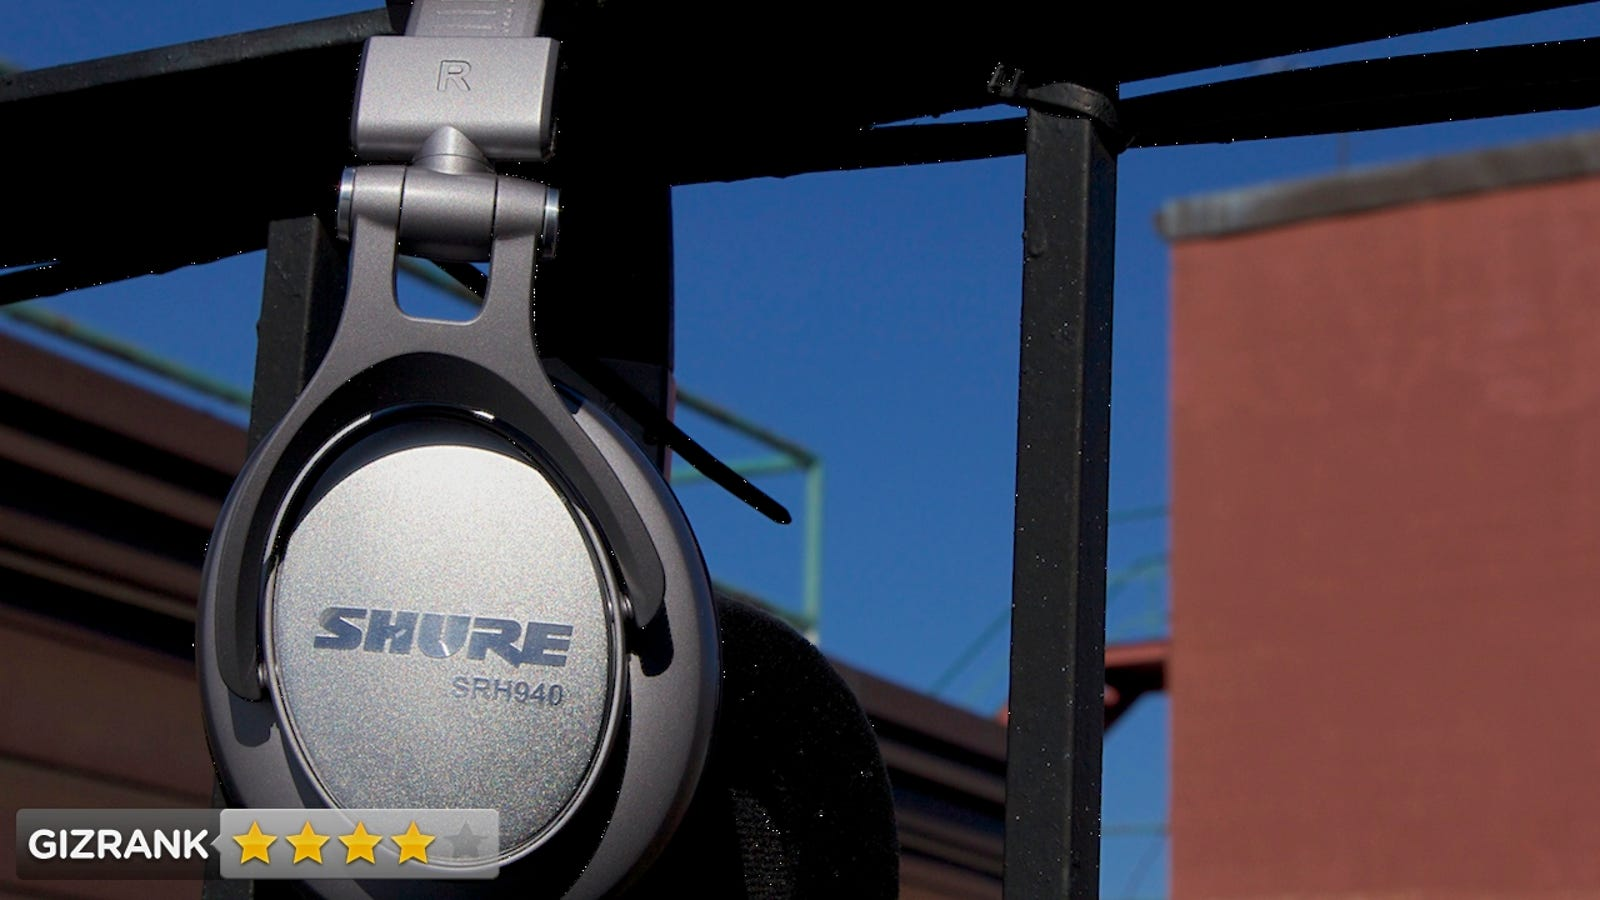 Shure SRH-940 Headphones Lightning Review: Serious Bang for the Buck